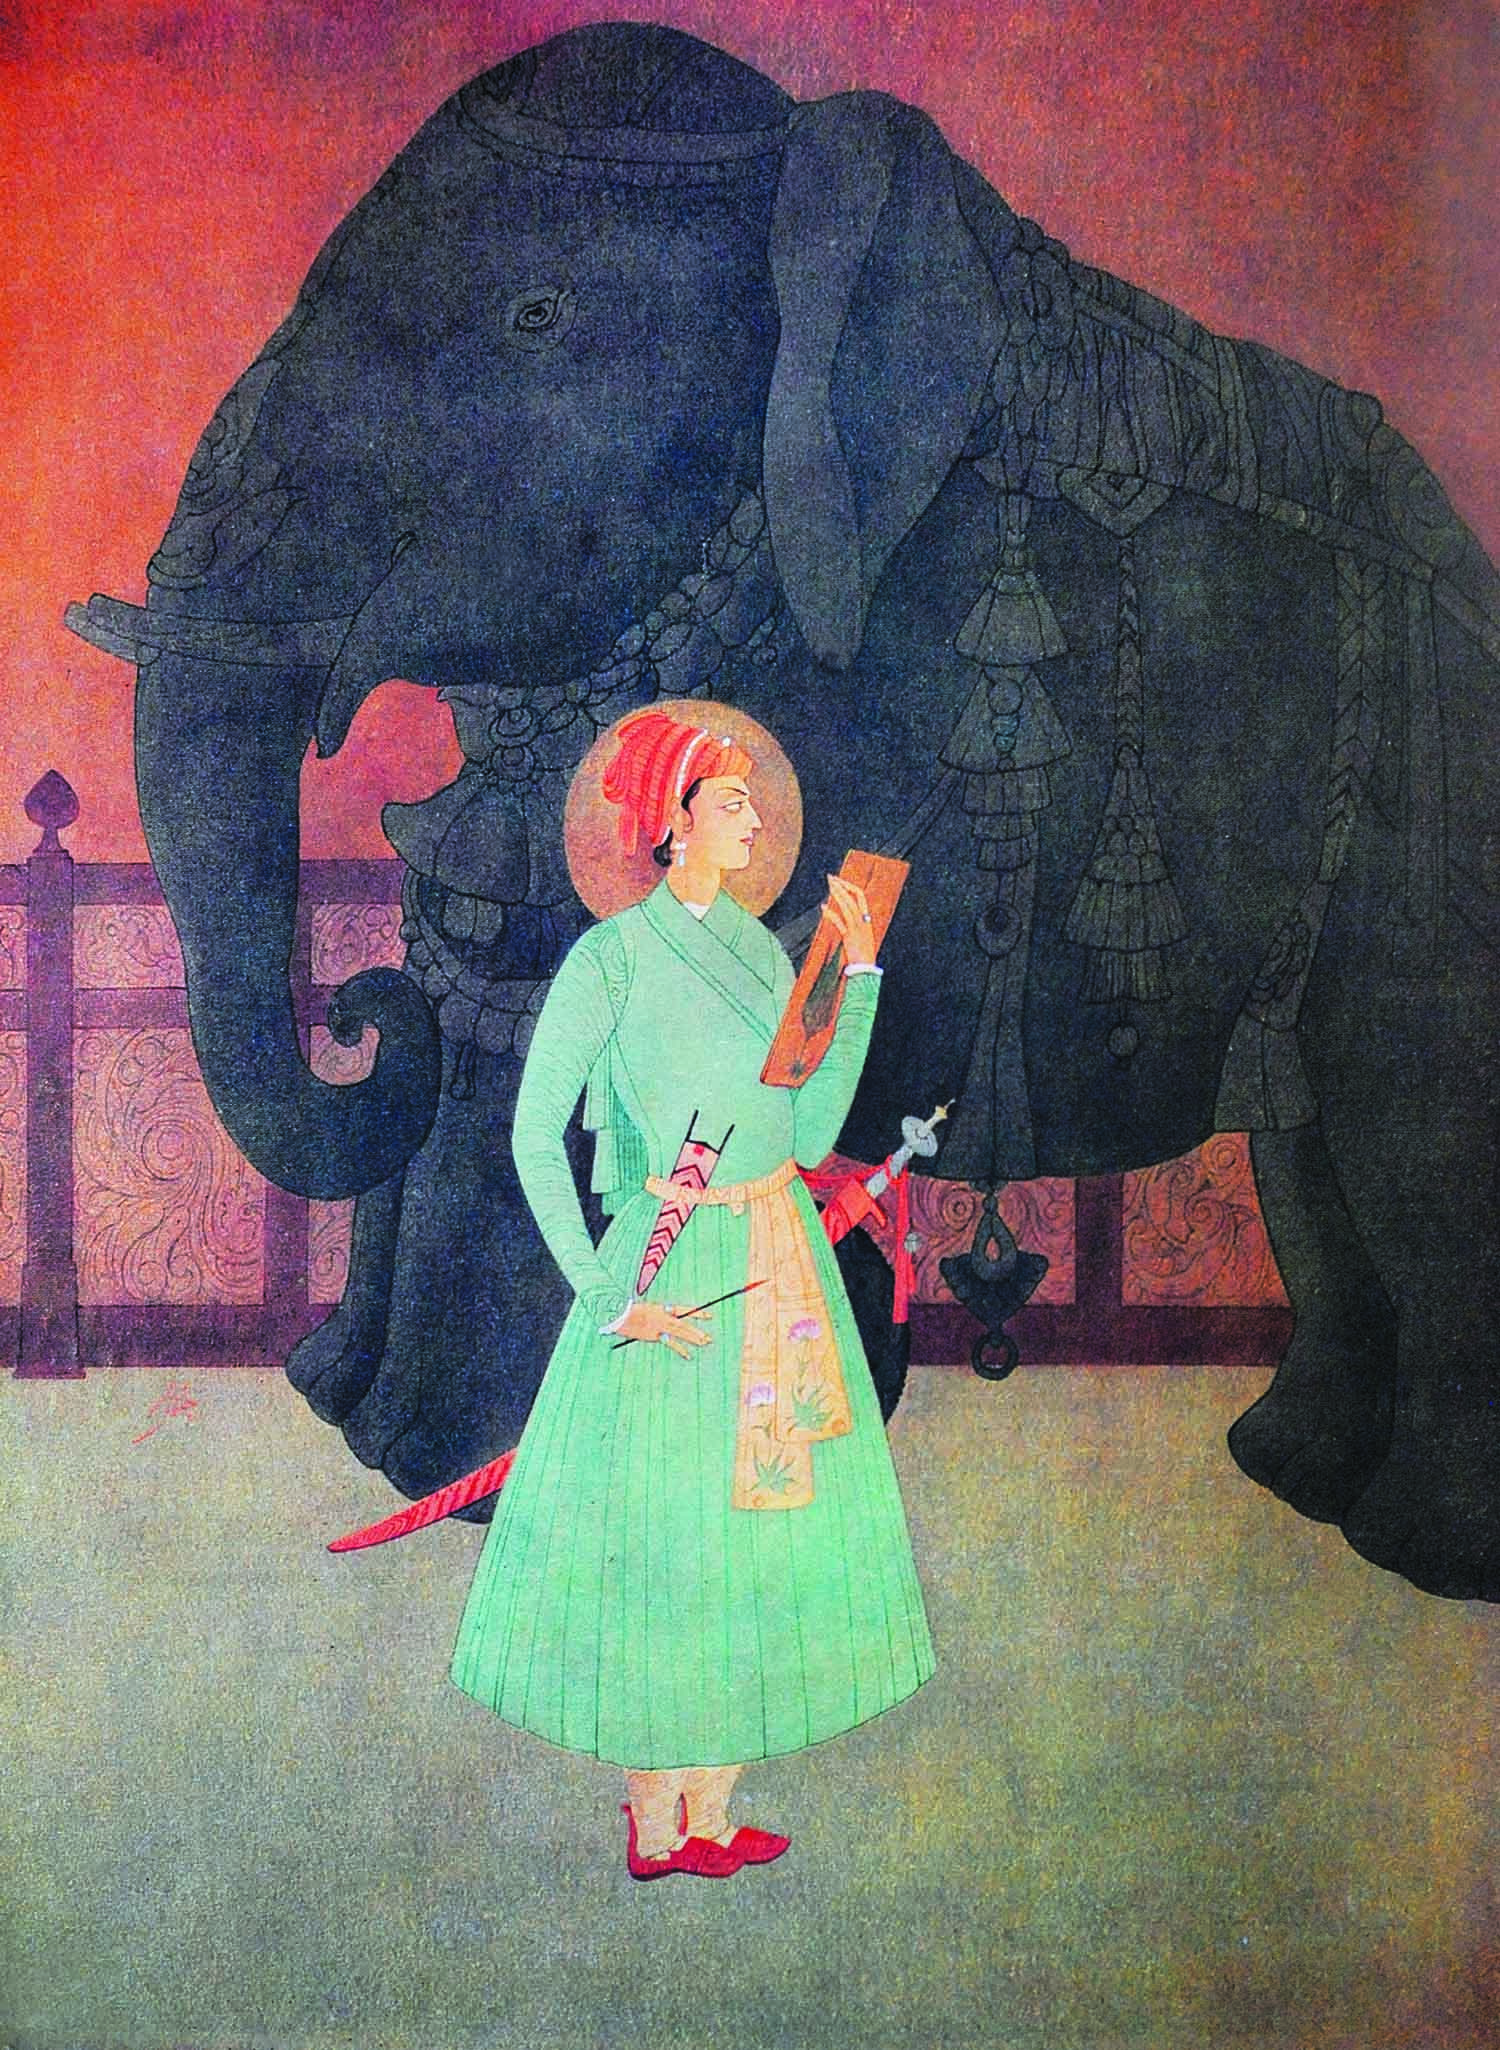 *Appear, O Rider of Destiny!/ Appear, O light of the dark realm ofchange,/ Silence the noise of the nations;/ Impress upon our ears thy music;/ Arise and tune the Harp of Brotherhood,/ Give us back the cup of the Wine of Love.* Chughtai's historical painting *Prince Salim* represents a confluence of the well-honed aesthetic of his own Chagatai Mongol heritage and that of the lineage of the Tartar Mughals represented by Prince Salim, who stands before the sculpture of an elephant with characteristic elegance.